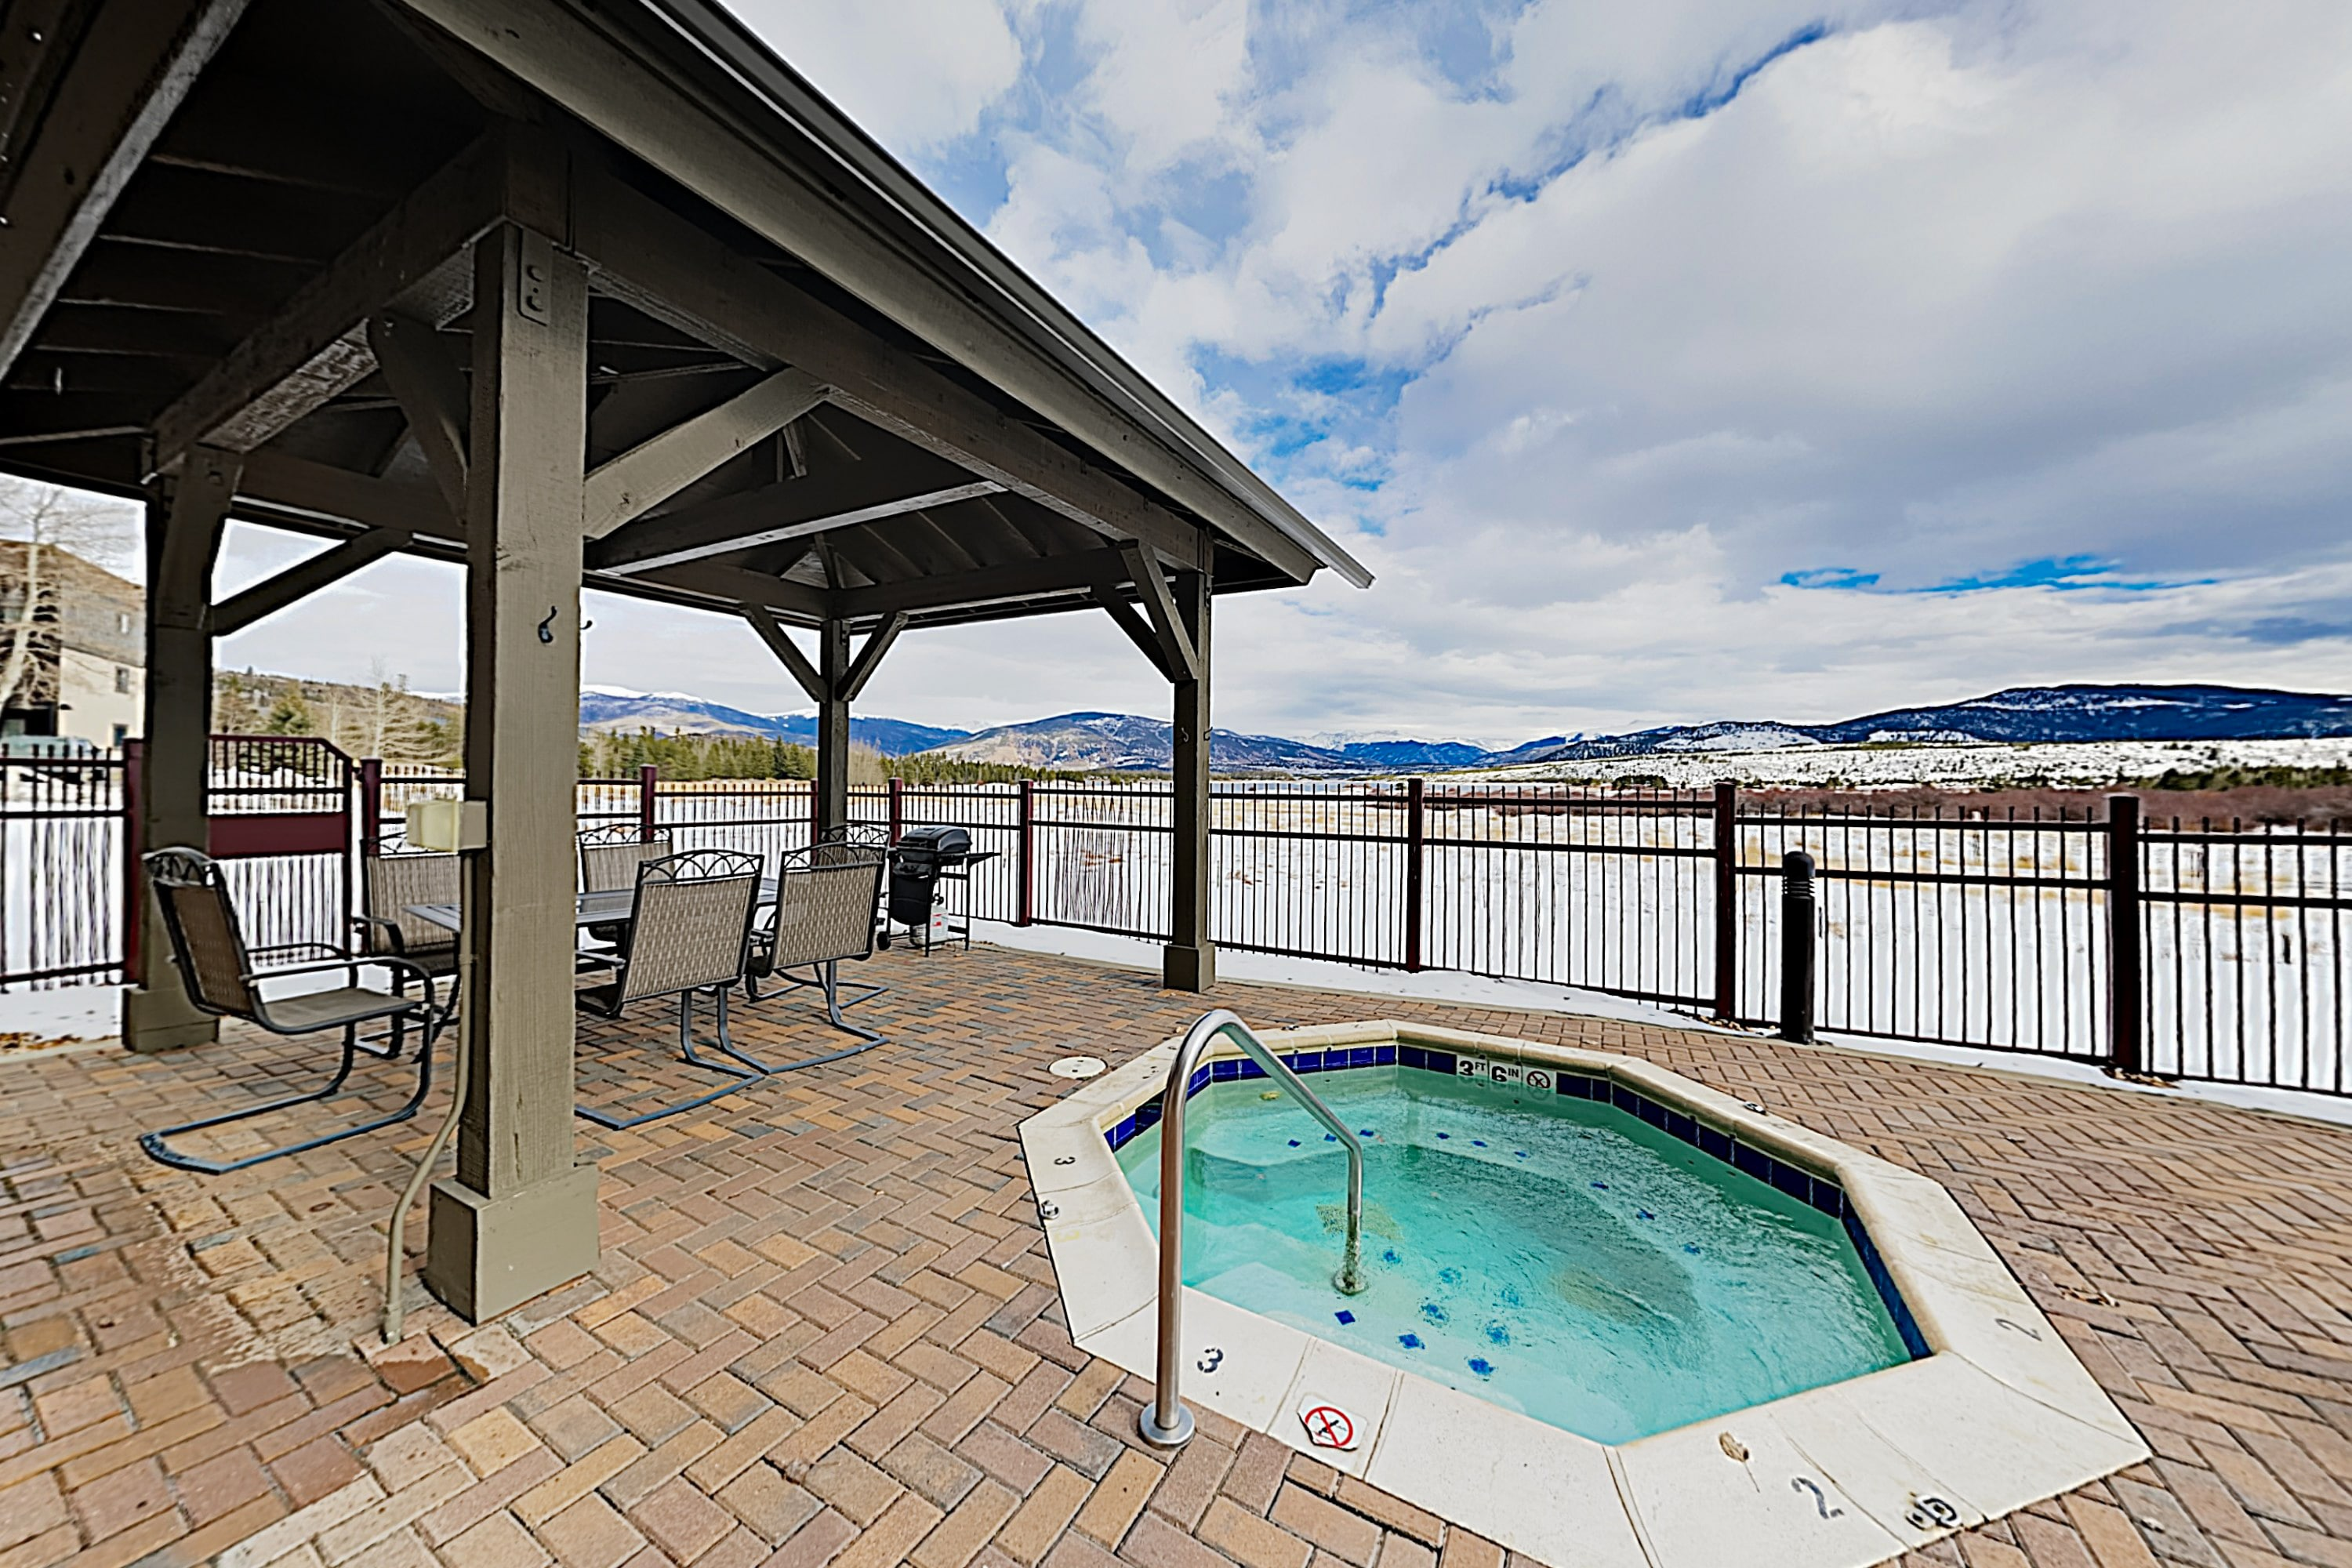 Relax in 2 shared hot tubs overlooking the lake.